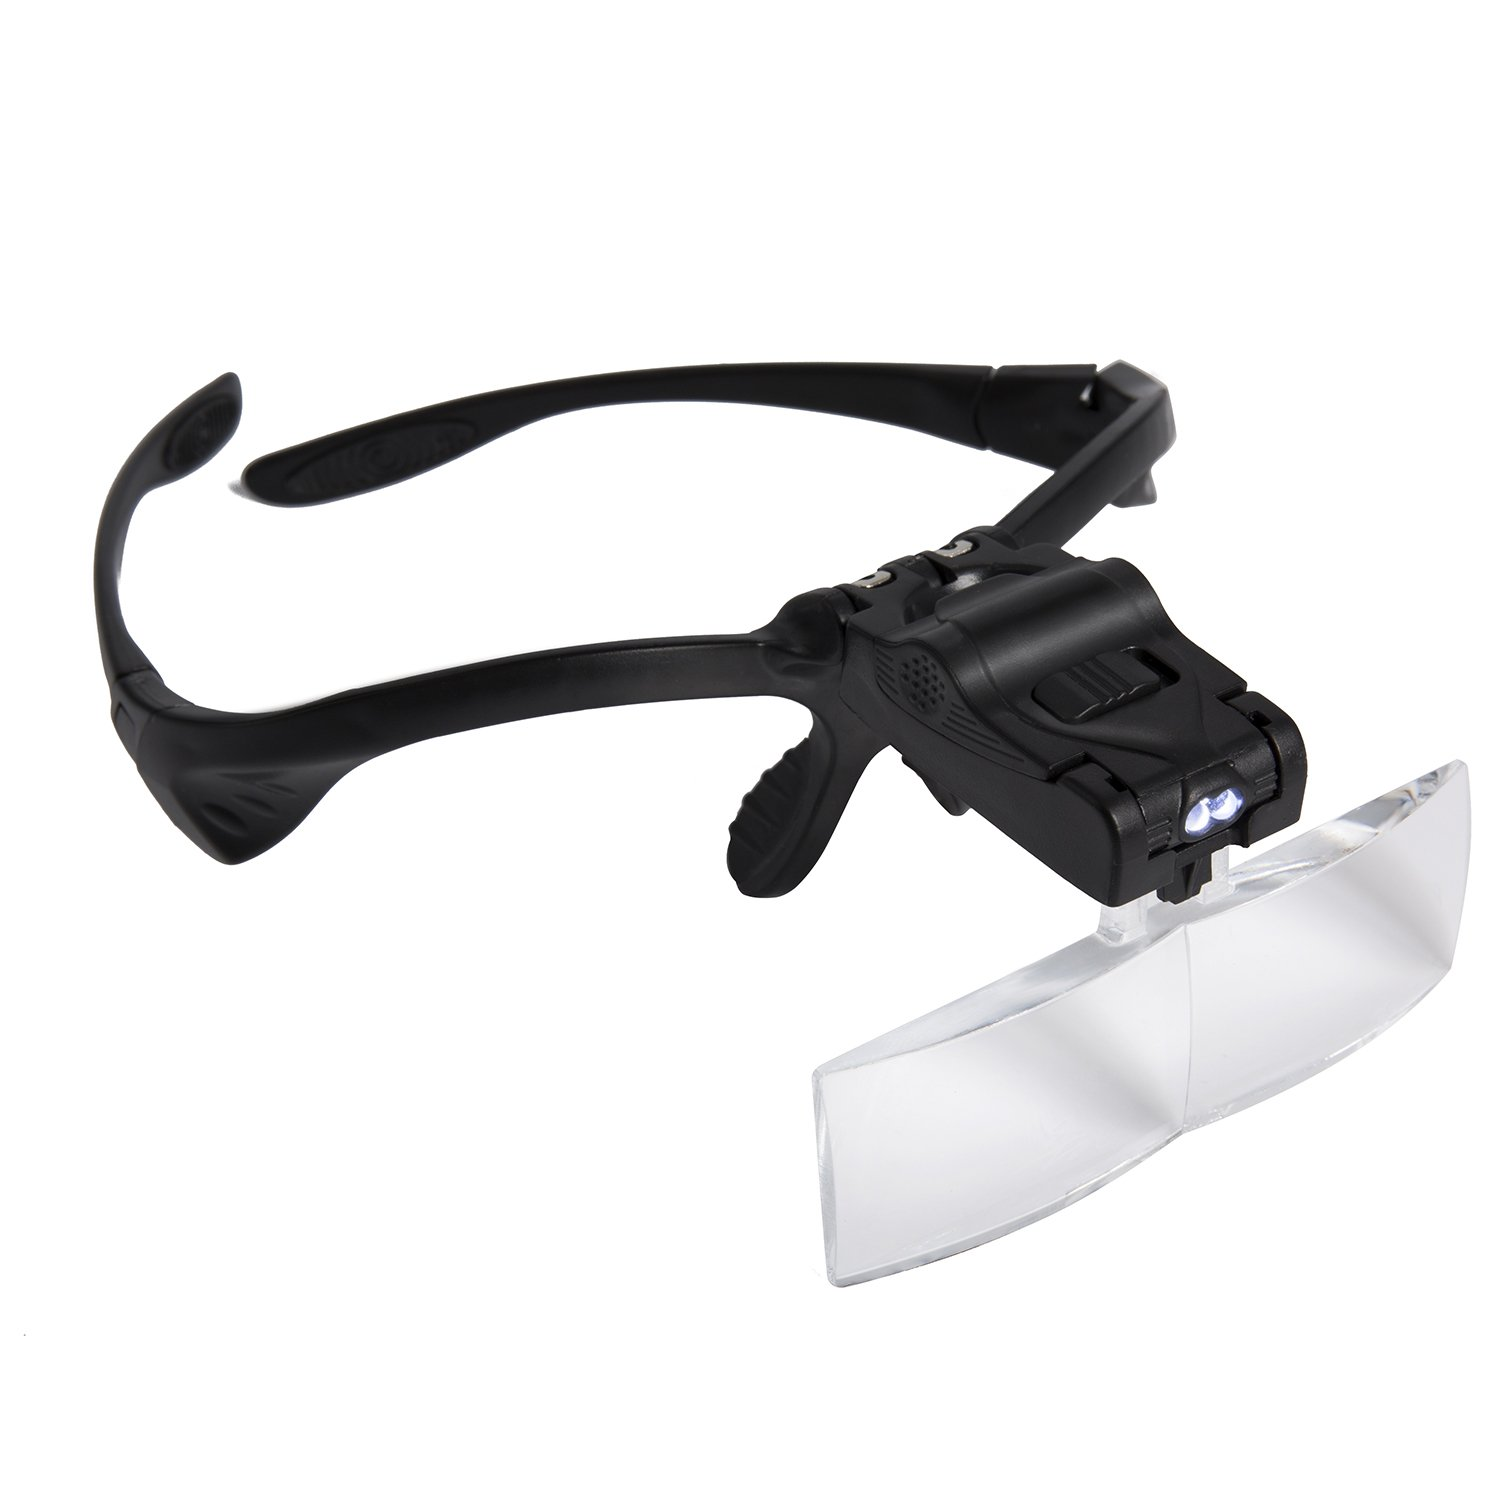 Head Mount Magnifier Eyewear with 2 LED Professional Jeweler's Loupe Light Bracket & Headband are Interchangeable 5 Replaceable Lenses: 1.0X, 1.5X, 2.0X, 2.5X, 3.5X for Seniors, Hobbyists by CAPOLUS